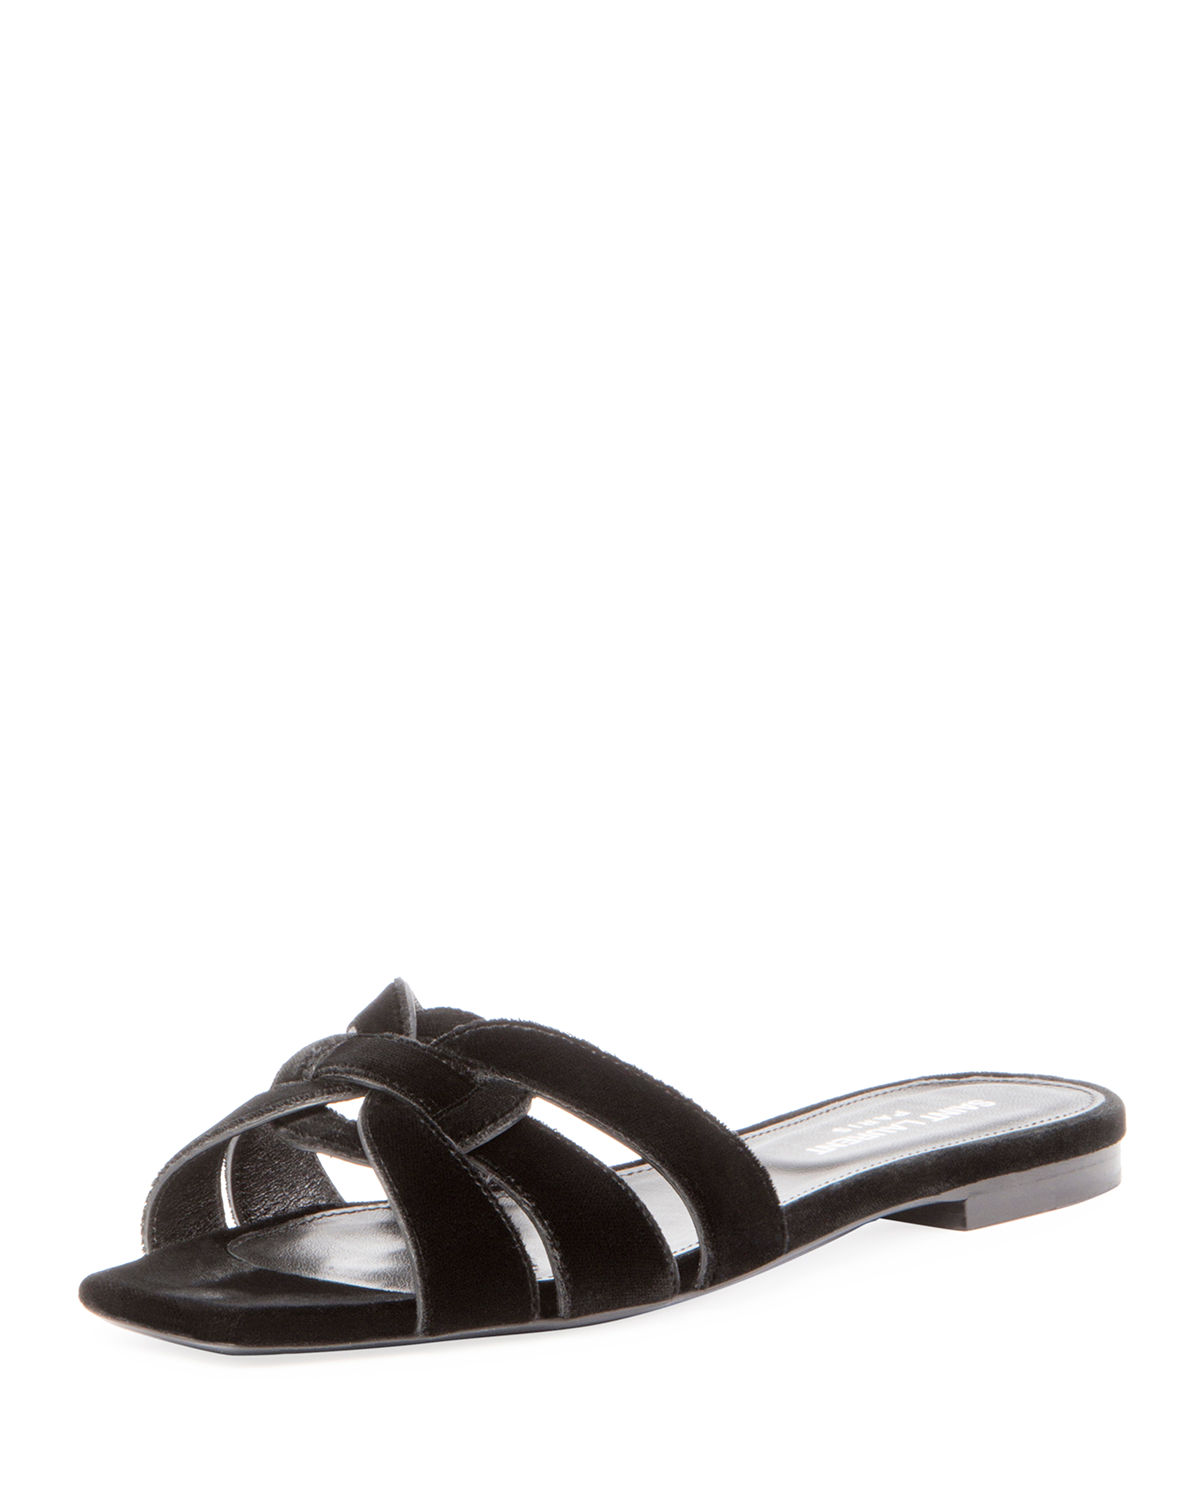 Saint Laurent Sandals NU PIEDS 05 velvet dlrWOm9P